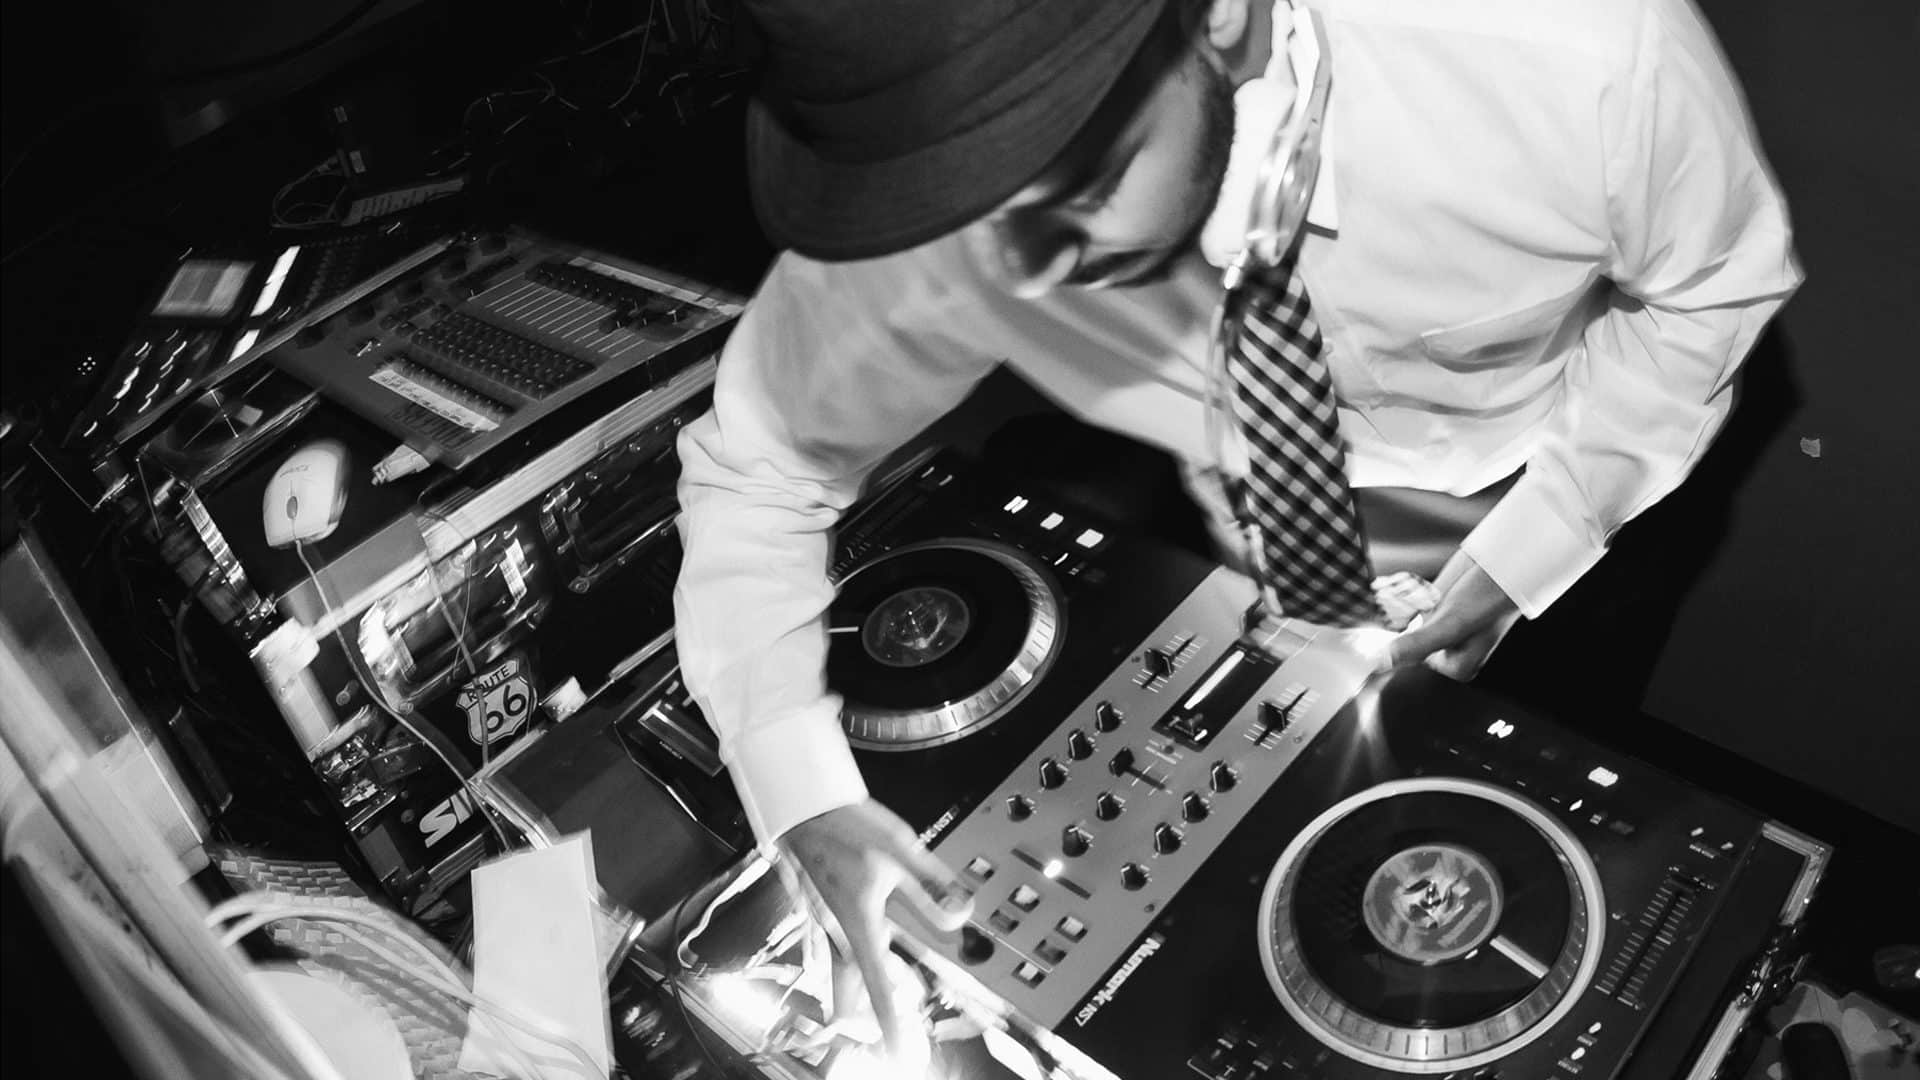 Boston's best DJ spinning at a private event